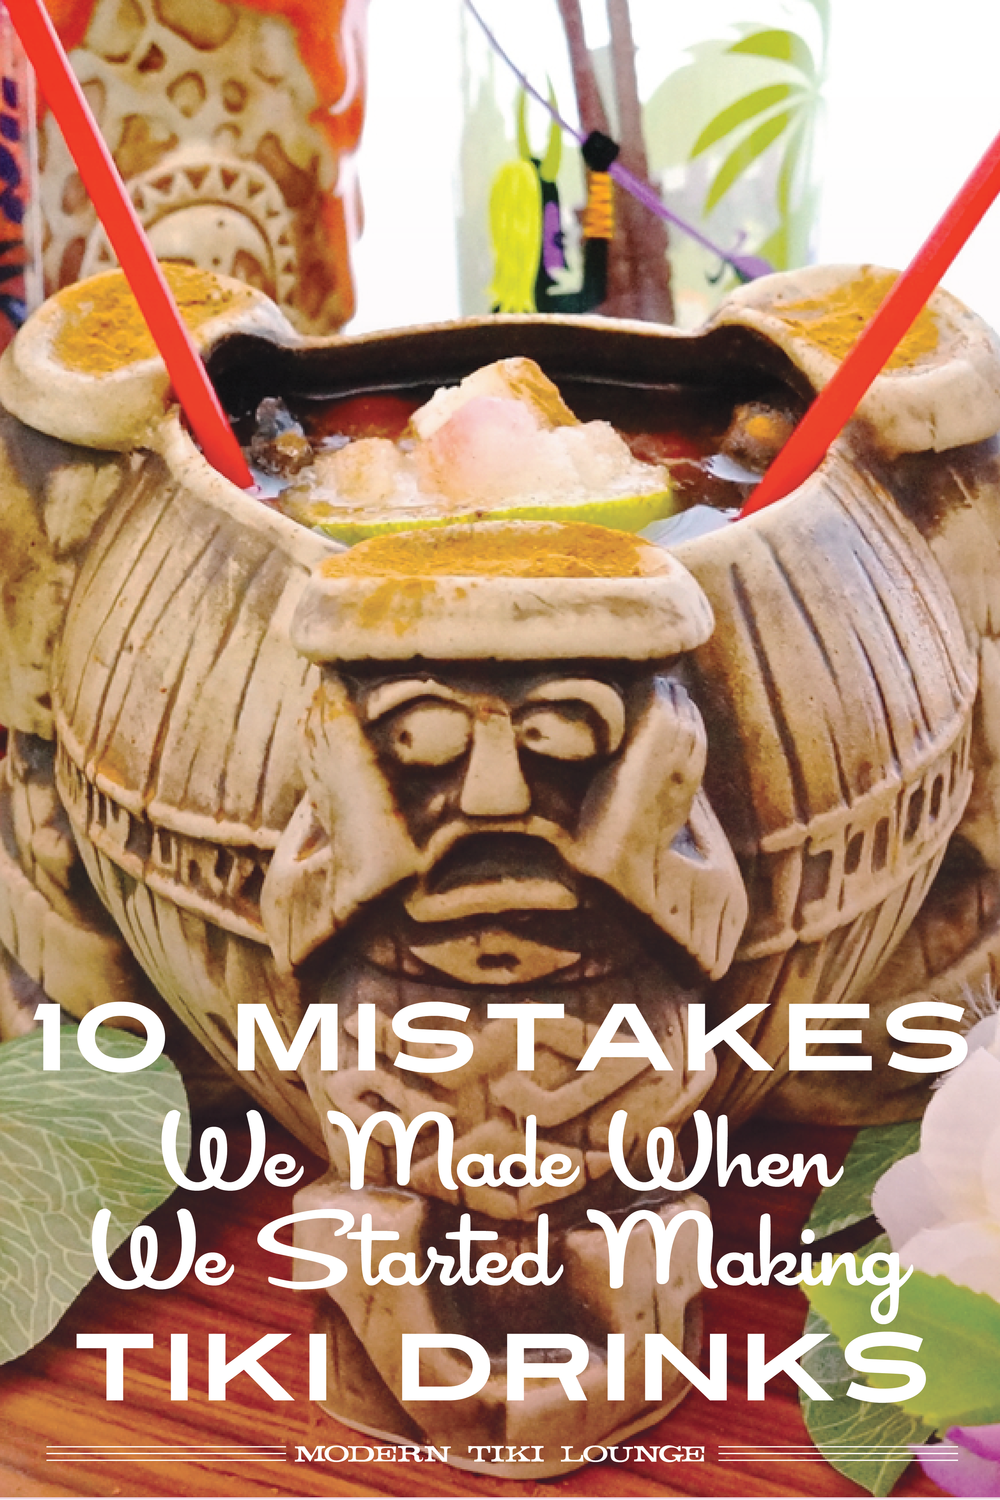 10-tiki-drink-mistakes.jpg